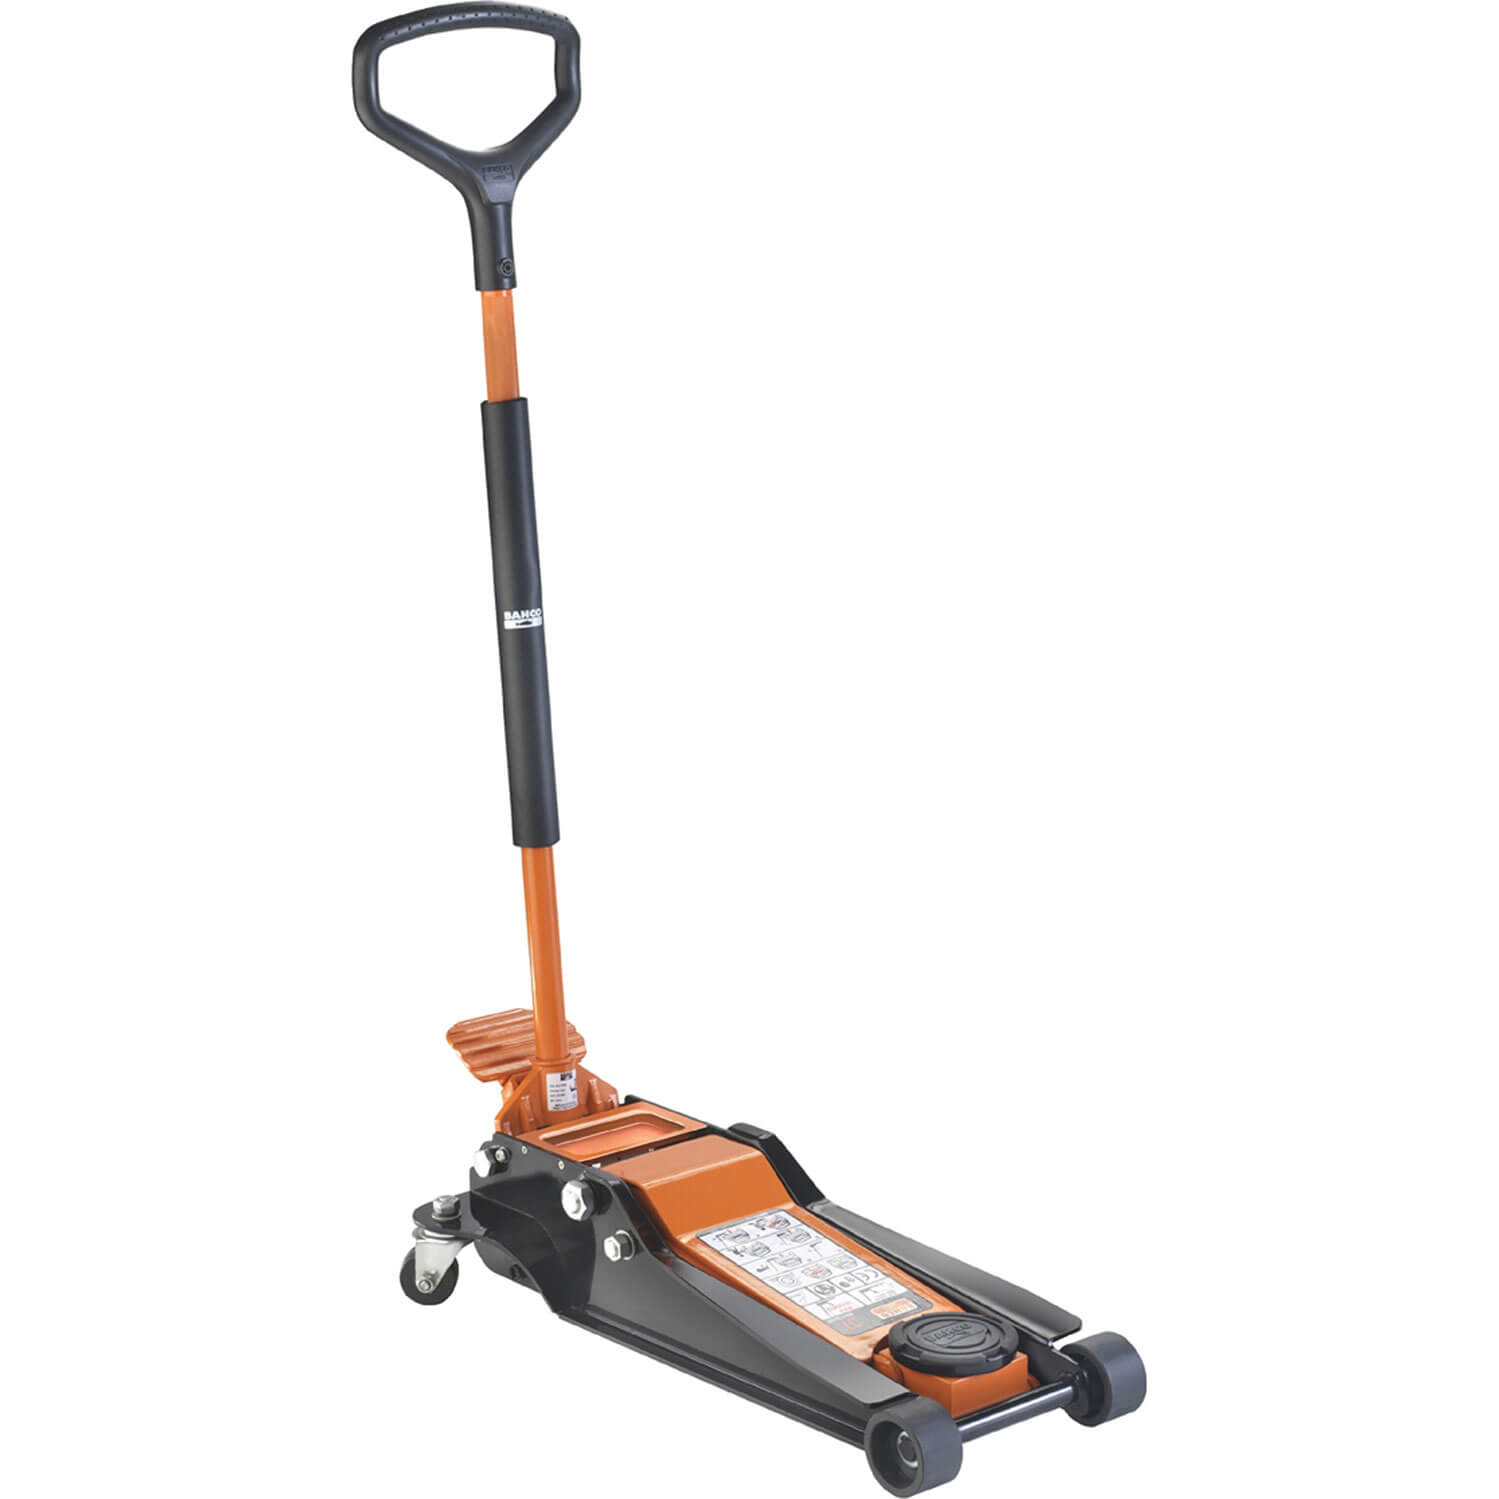 Image of Bahco Low Entry Trolley Jack 3 Tonne